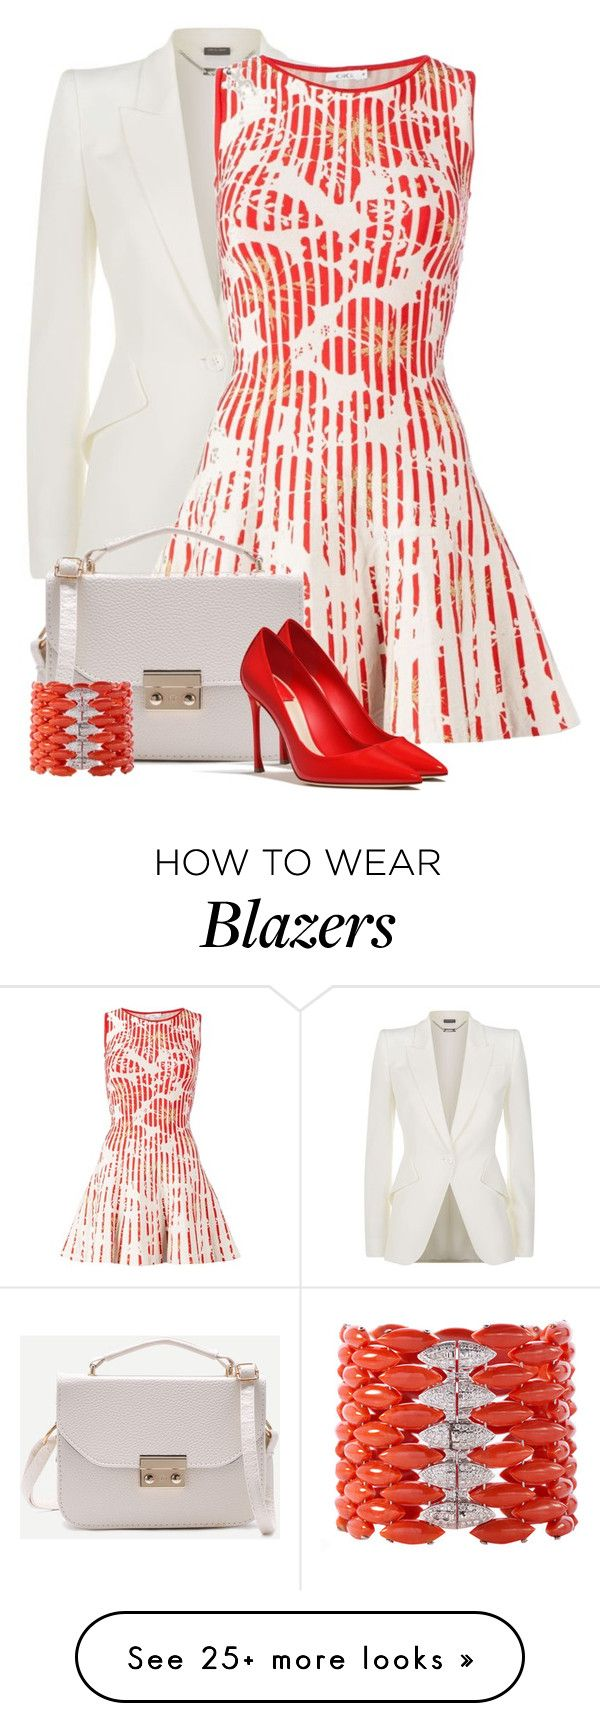 """Untitled #6283"" by cassandra-cafone-wright on Polyvore featuring Alexander McQueen and Gig"